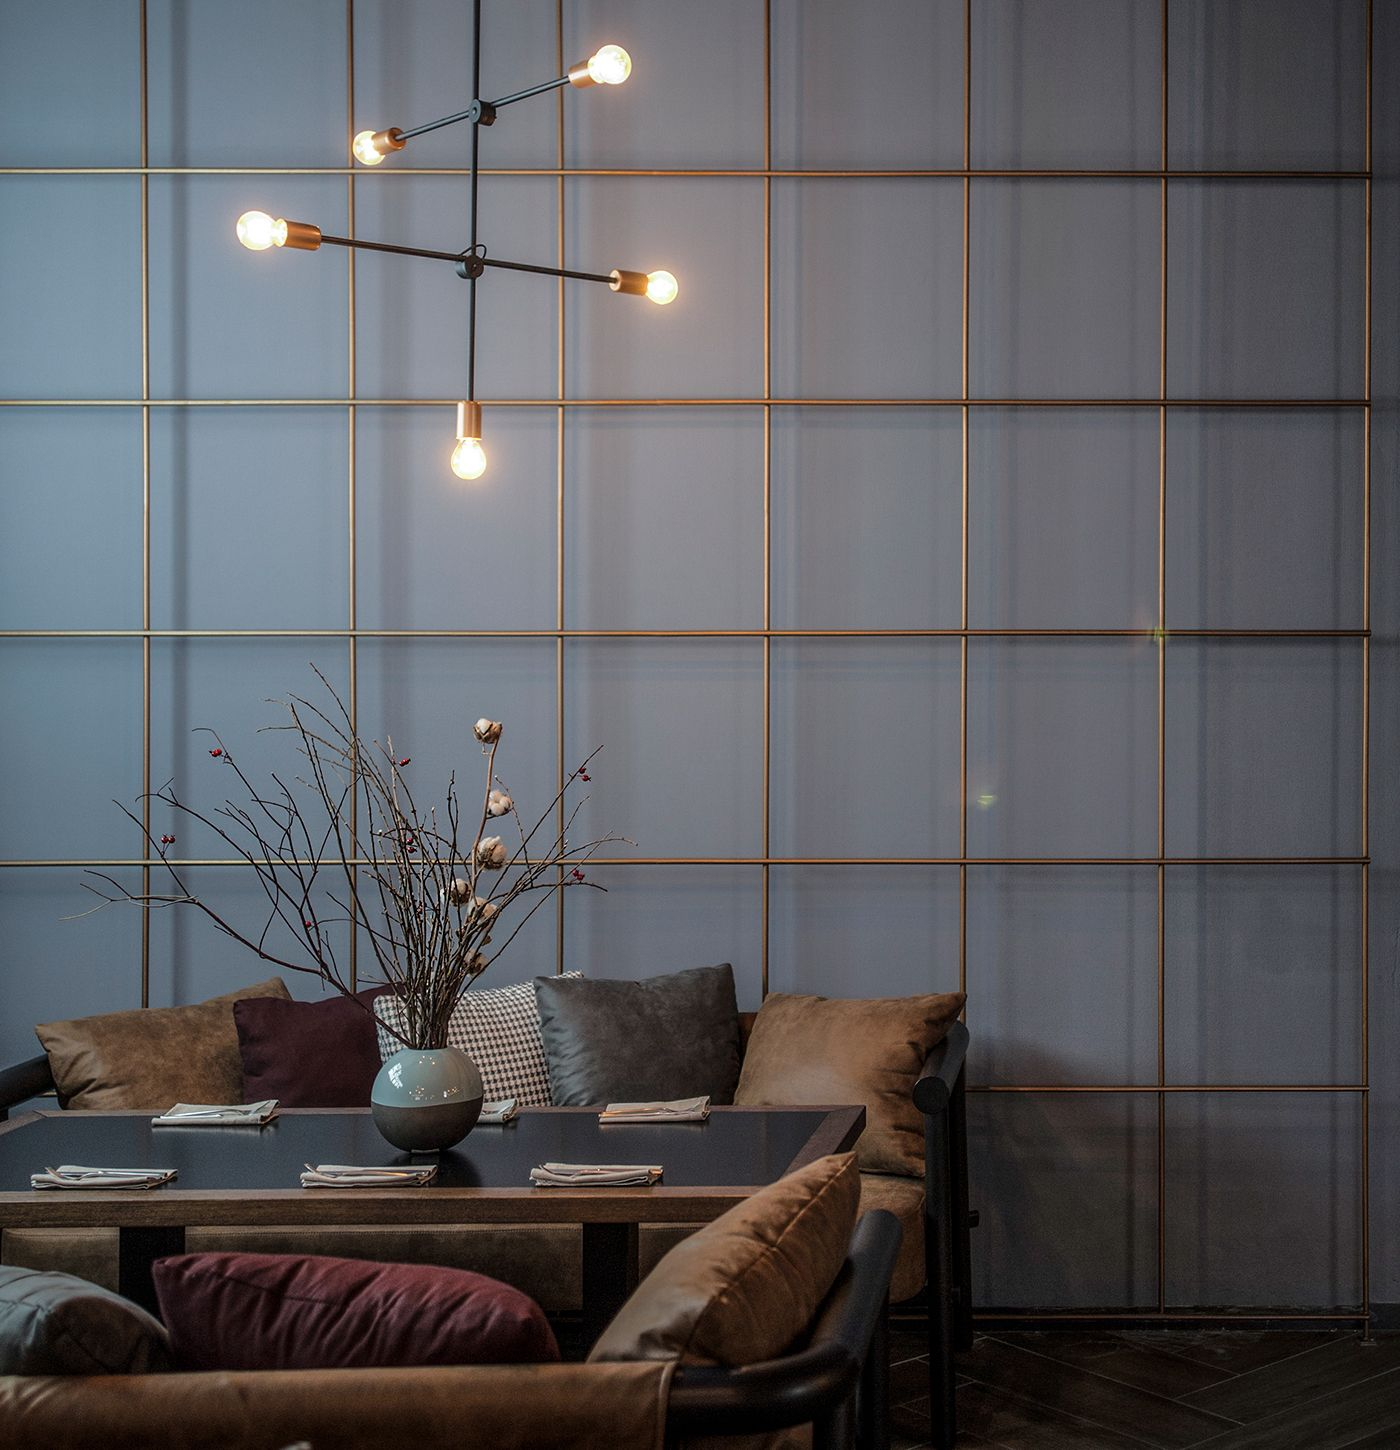 Pin By Ydism Sharon Nijboer On Walls Pinterest Interiors  # Meuble Tv Urano